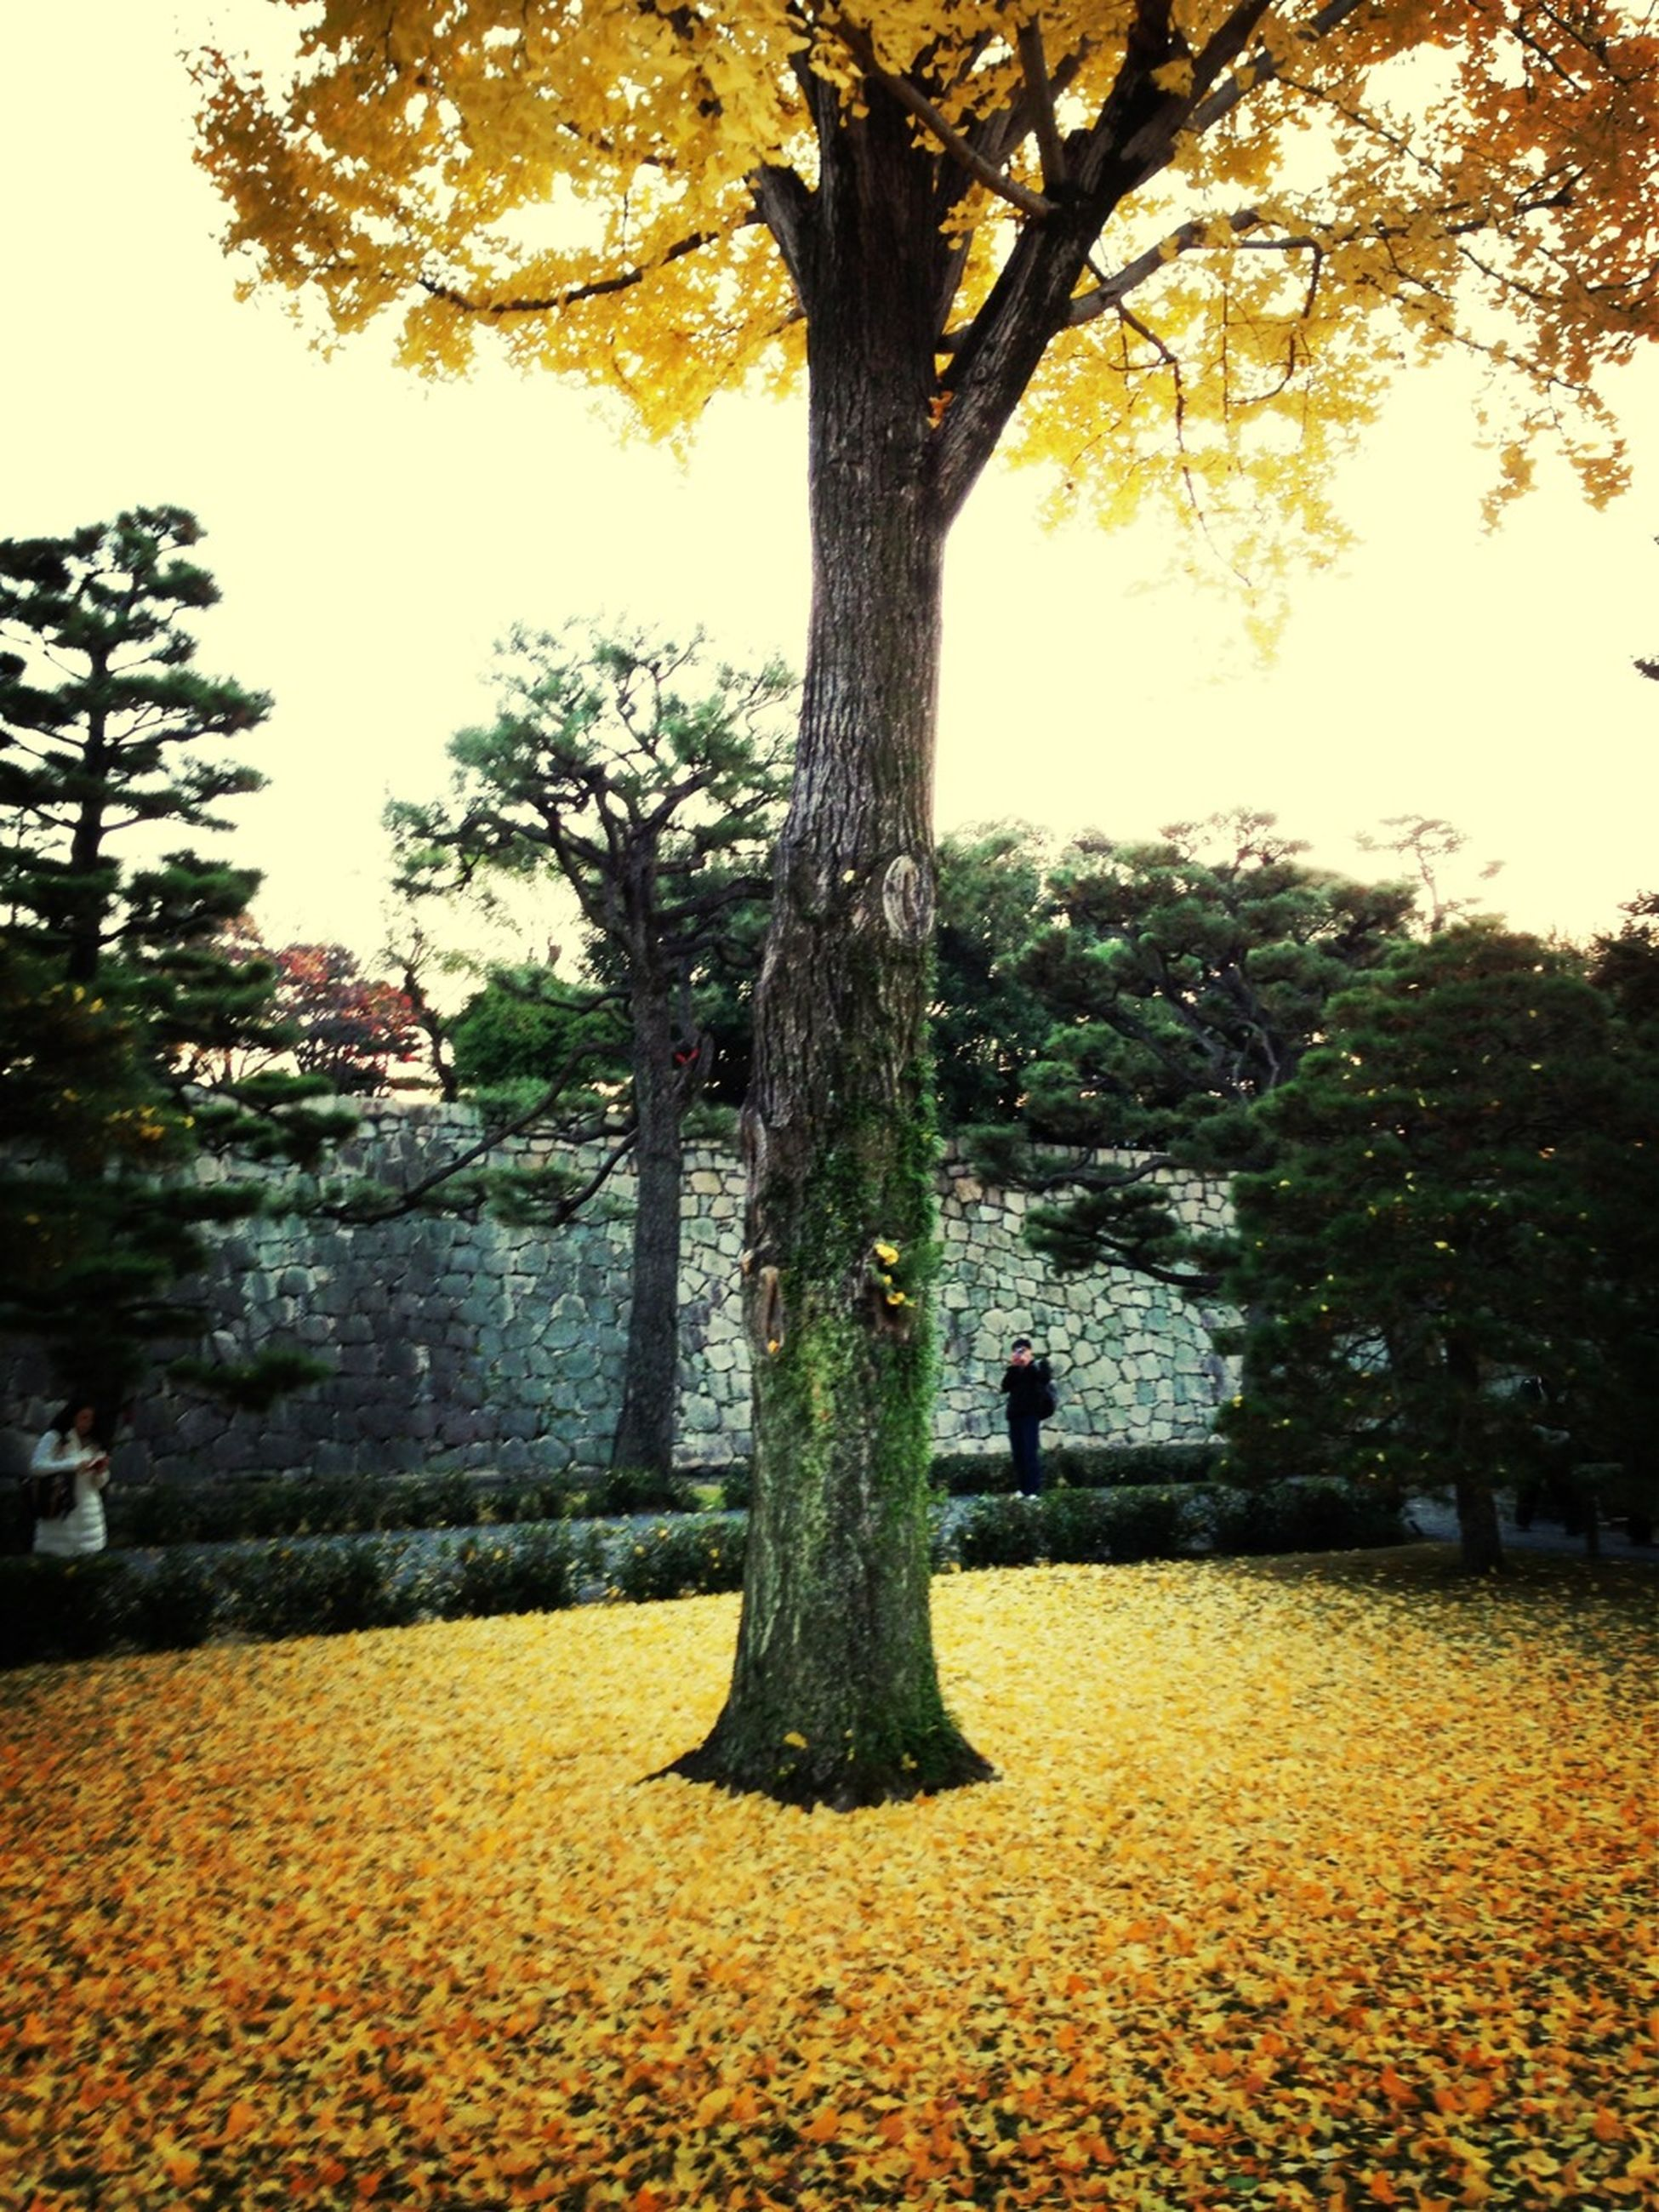 tree, autumn, change, yellow, tree trunk, season, growth, branch, nature, leaf, tranquility, beauty in nature, clear sky, tranquil scene, orange color, building exterior, sunlight, park - man made space, outdoors